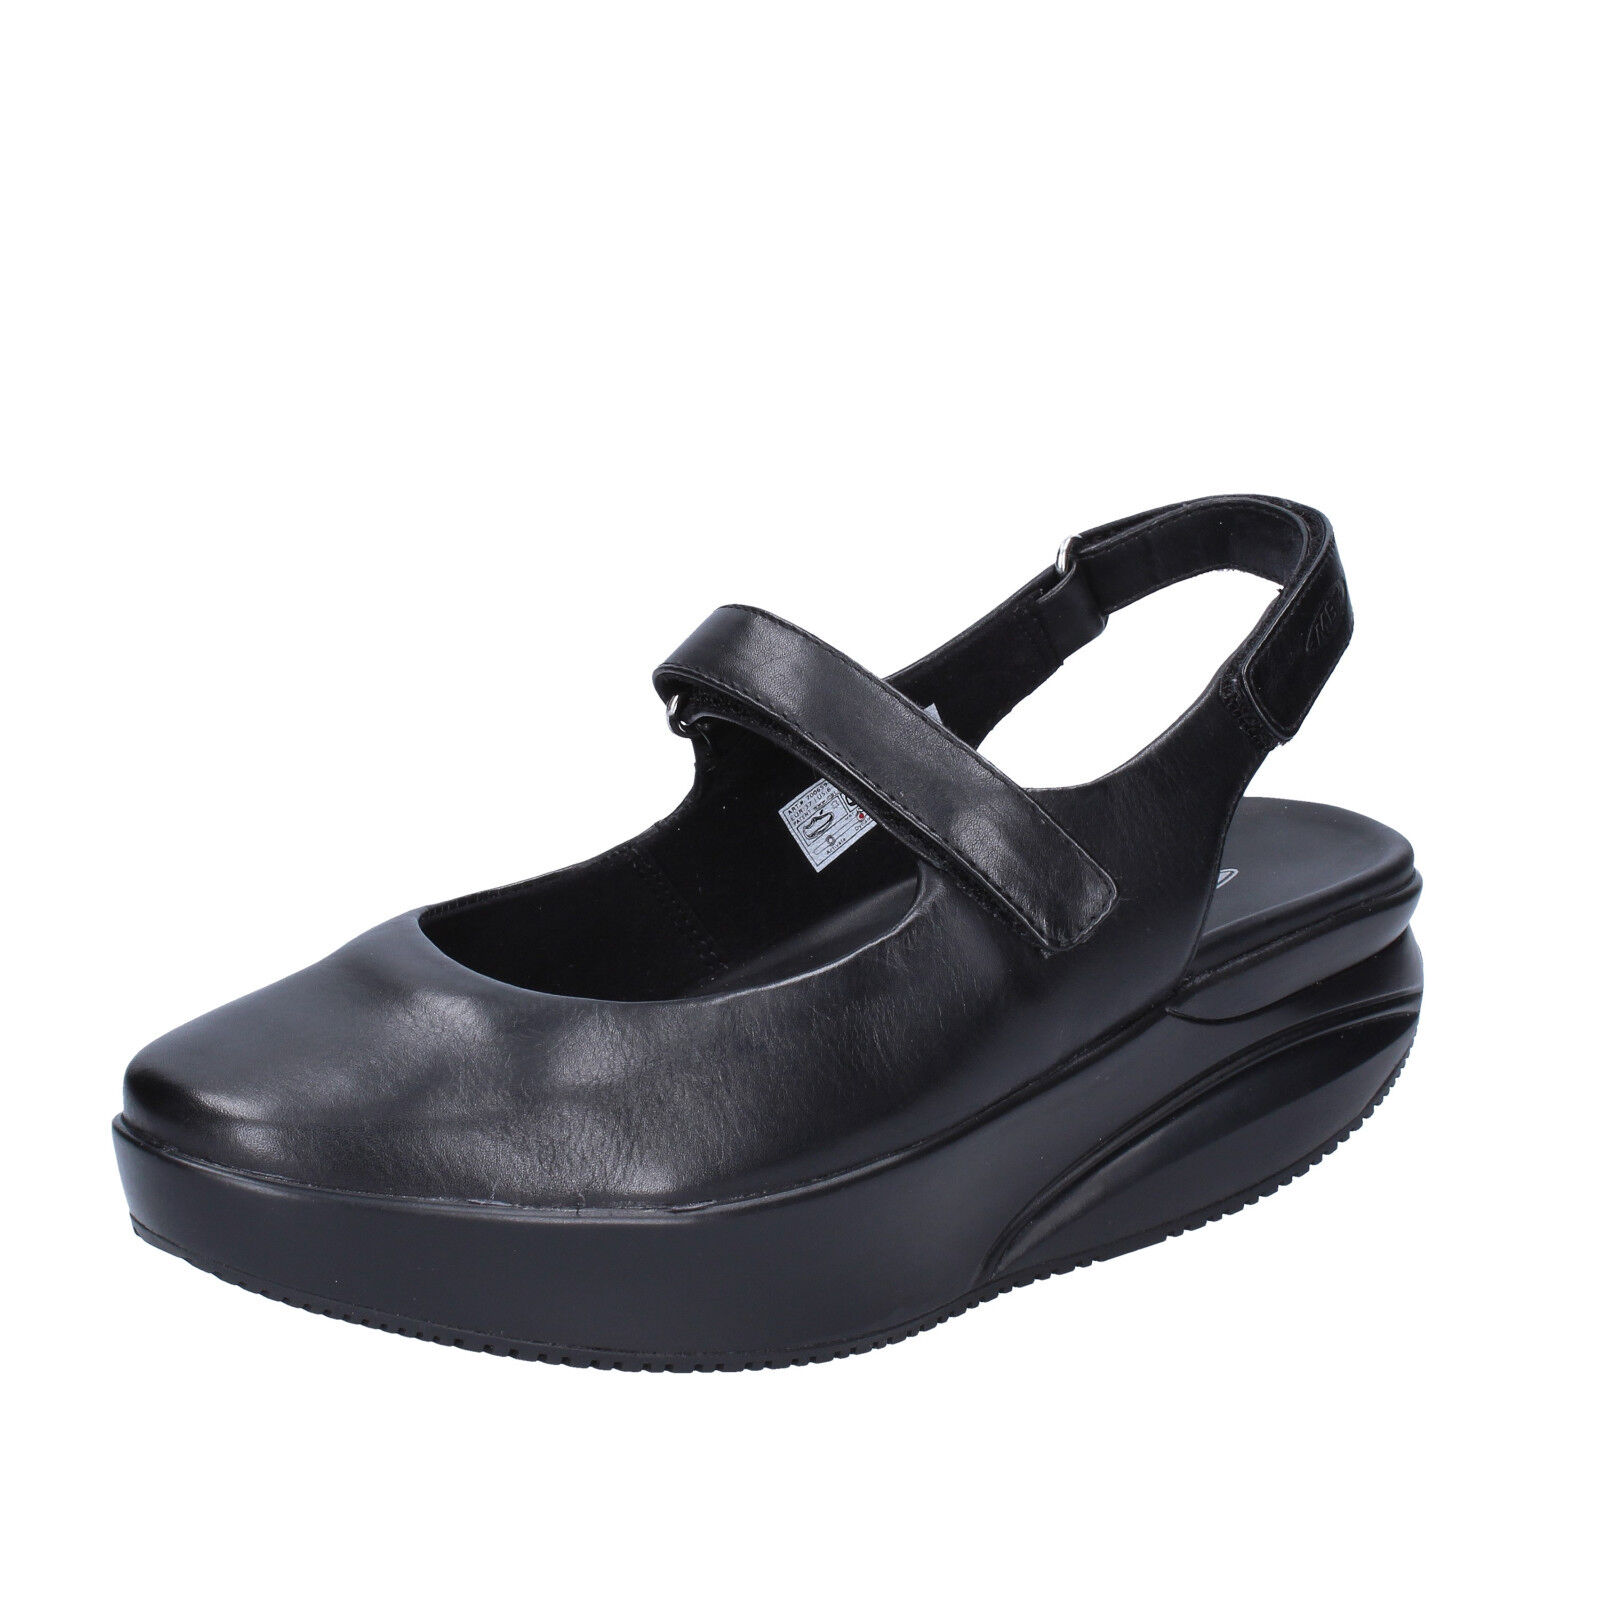 mujer zapatos MBT KOFFI 3,5 (EU 36) flats negro leather dynamic BX889-36